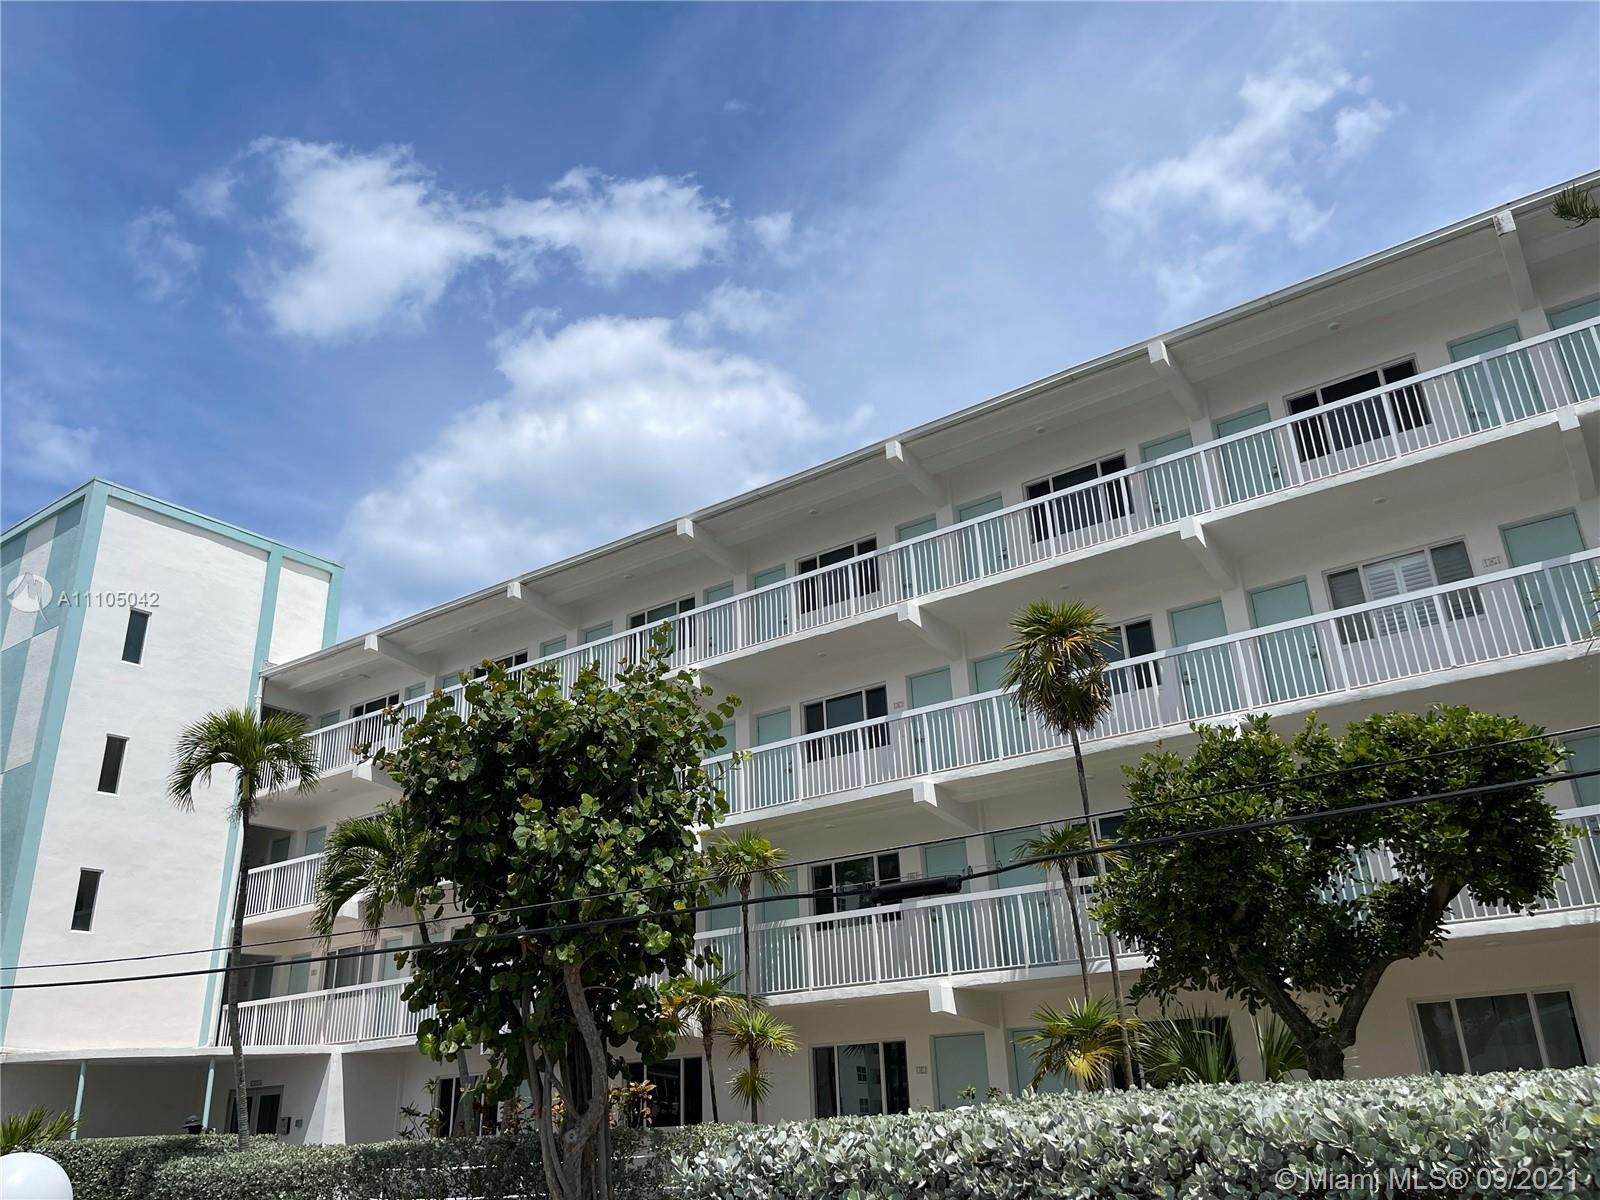 Location , Location, Location!! This unit features direct breathtaking views of the ocean. Wake up t